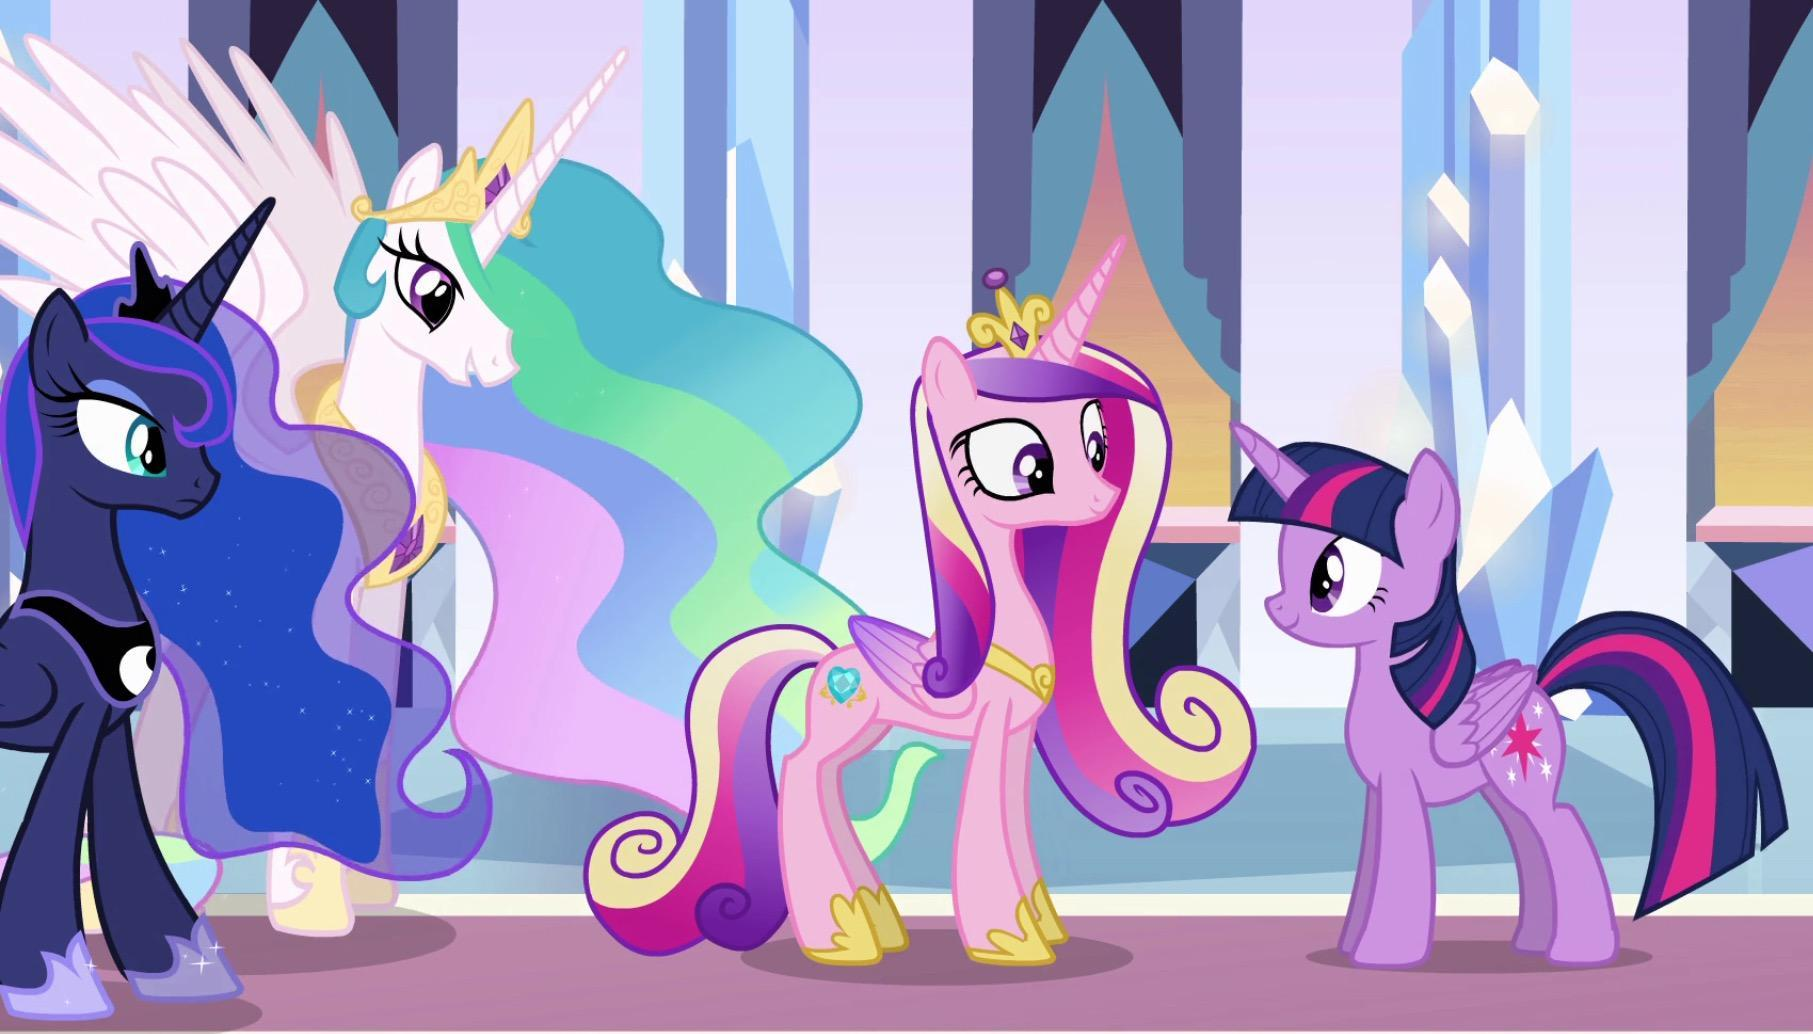 Whitch my little pony princess are you personality quiz